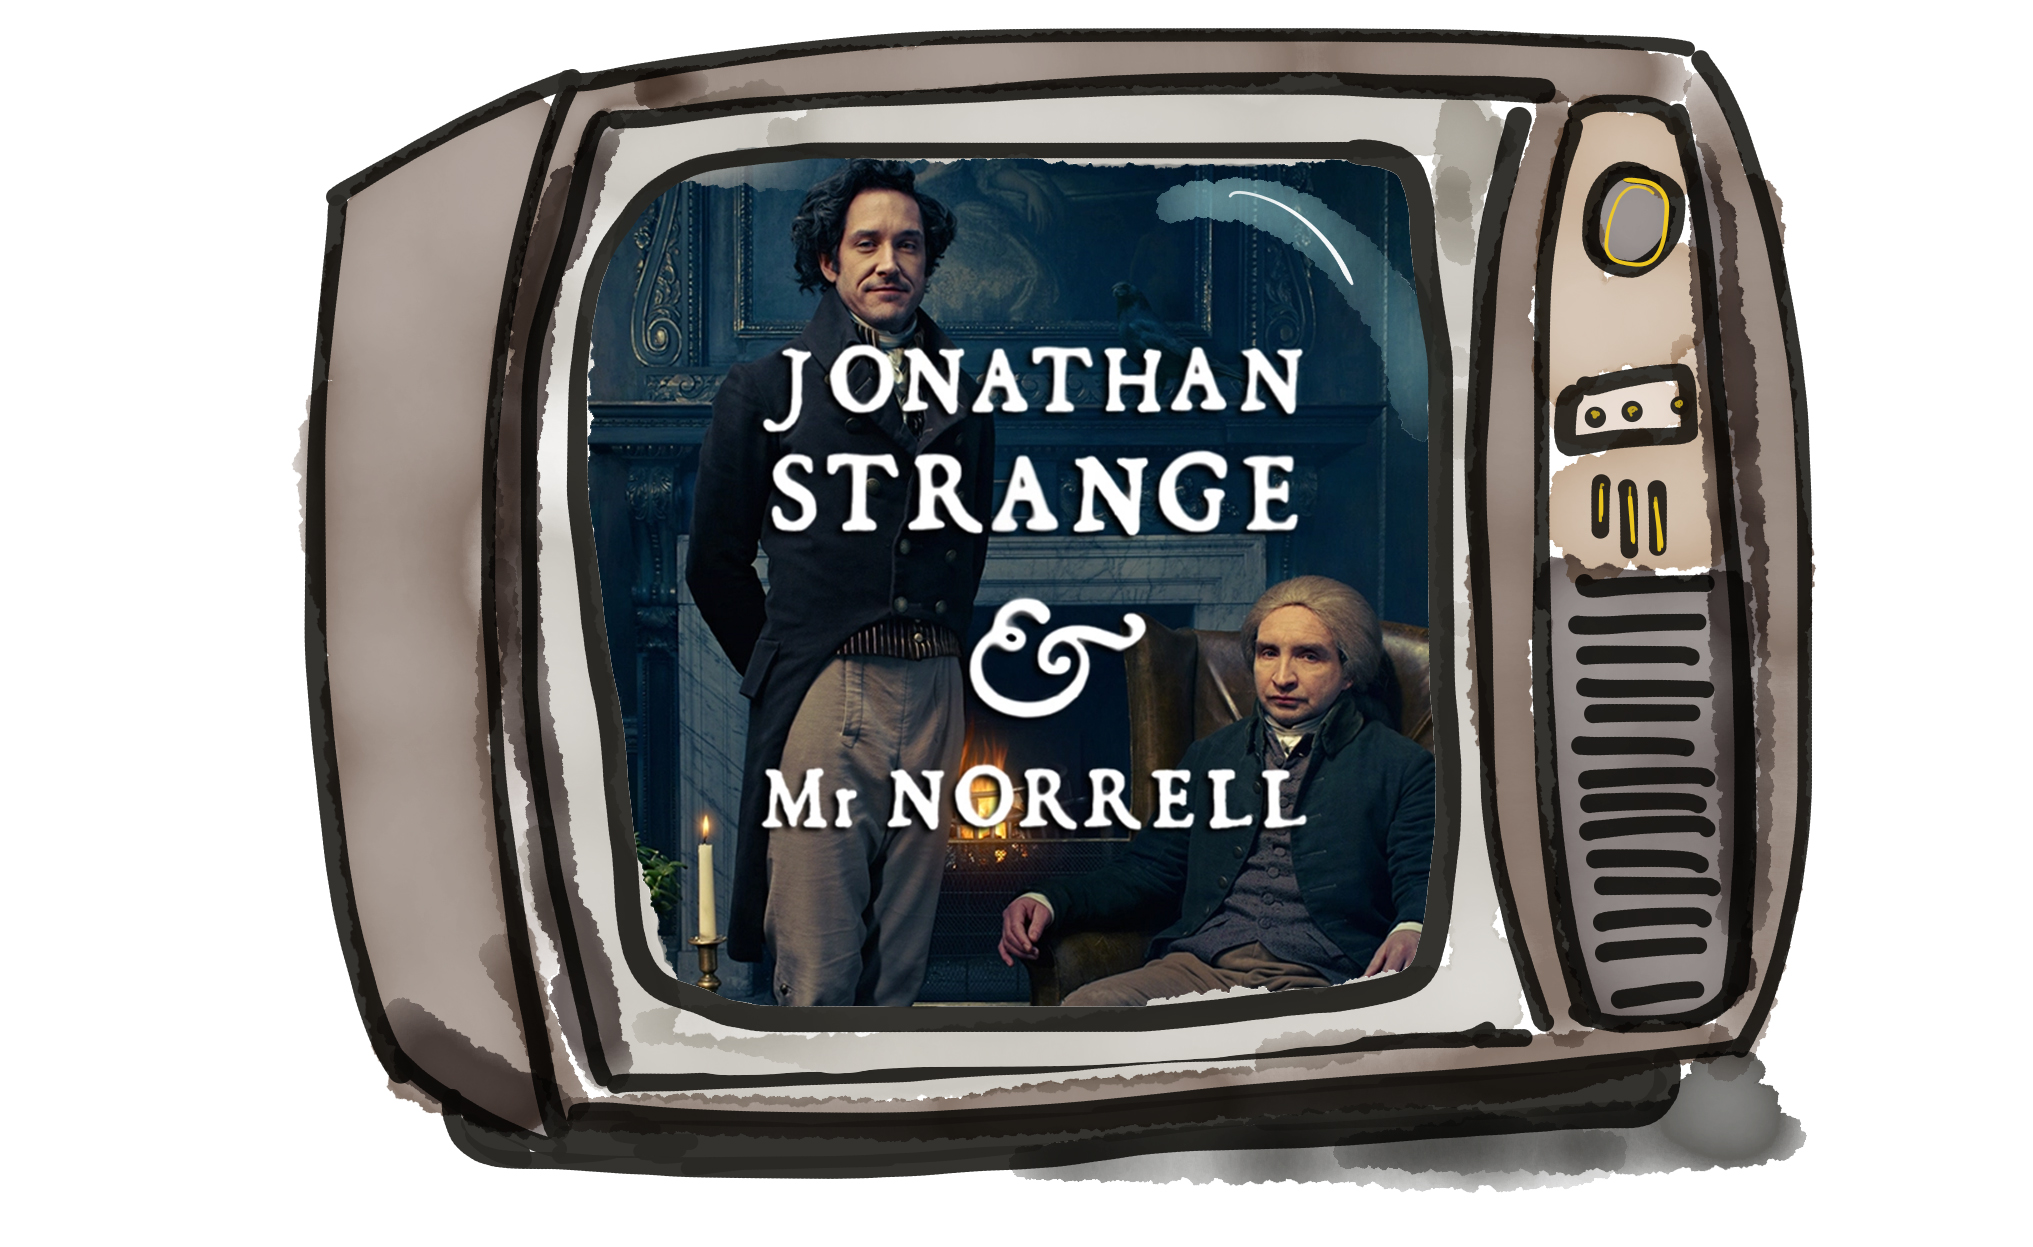 Jonathan Strange & Mr Norrell - the BBC series